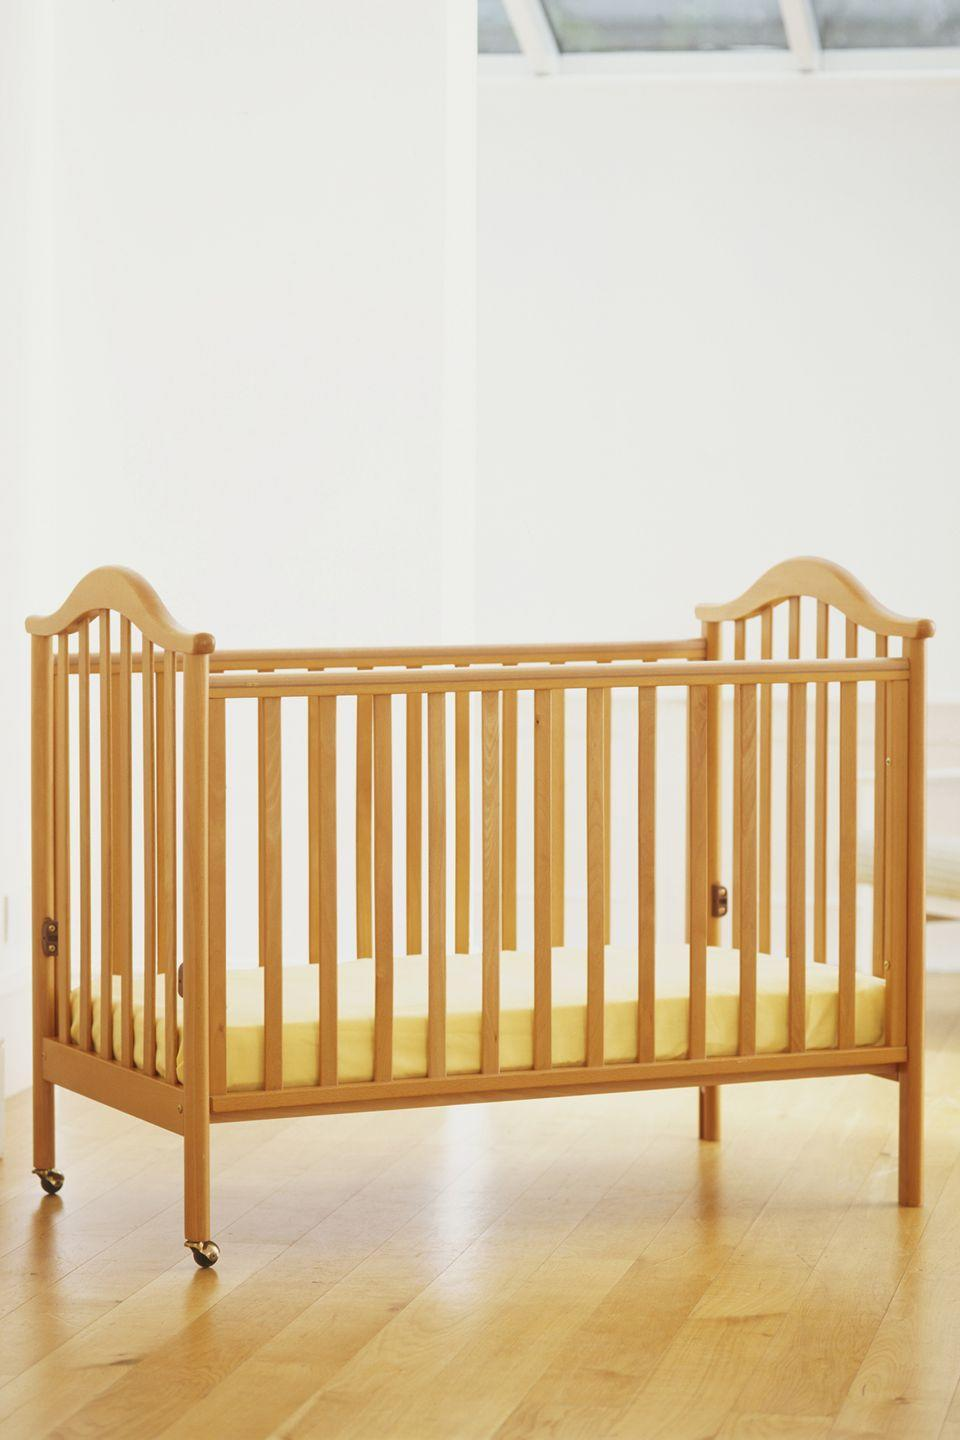 """<p>Over the decades, there have been millions of cribs recalled, in addition to improved crib safety standards put in place, according to <a href=""""https://www.healthychildren.org/English/ages-stages/baby/sleep/Pages/New-Crib-Standards-What-Parents-Need-to-Know.aspx"""" rel=""""nofollow noopener"""" target=""""_blank"""" data-ylk=""""slk:HealthyChildren.org"""" class=""""link rapid-noclick-resp"""">HealthyChildren.org</a>. Invest in a safe bed for your little one by purchasing one that's new and up to latest standards. </p>"""